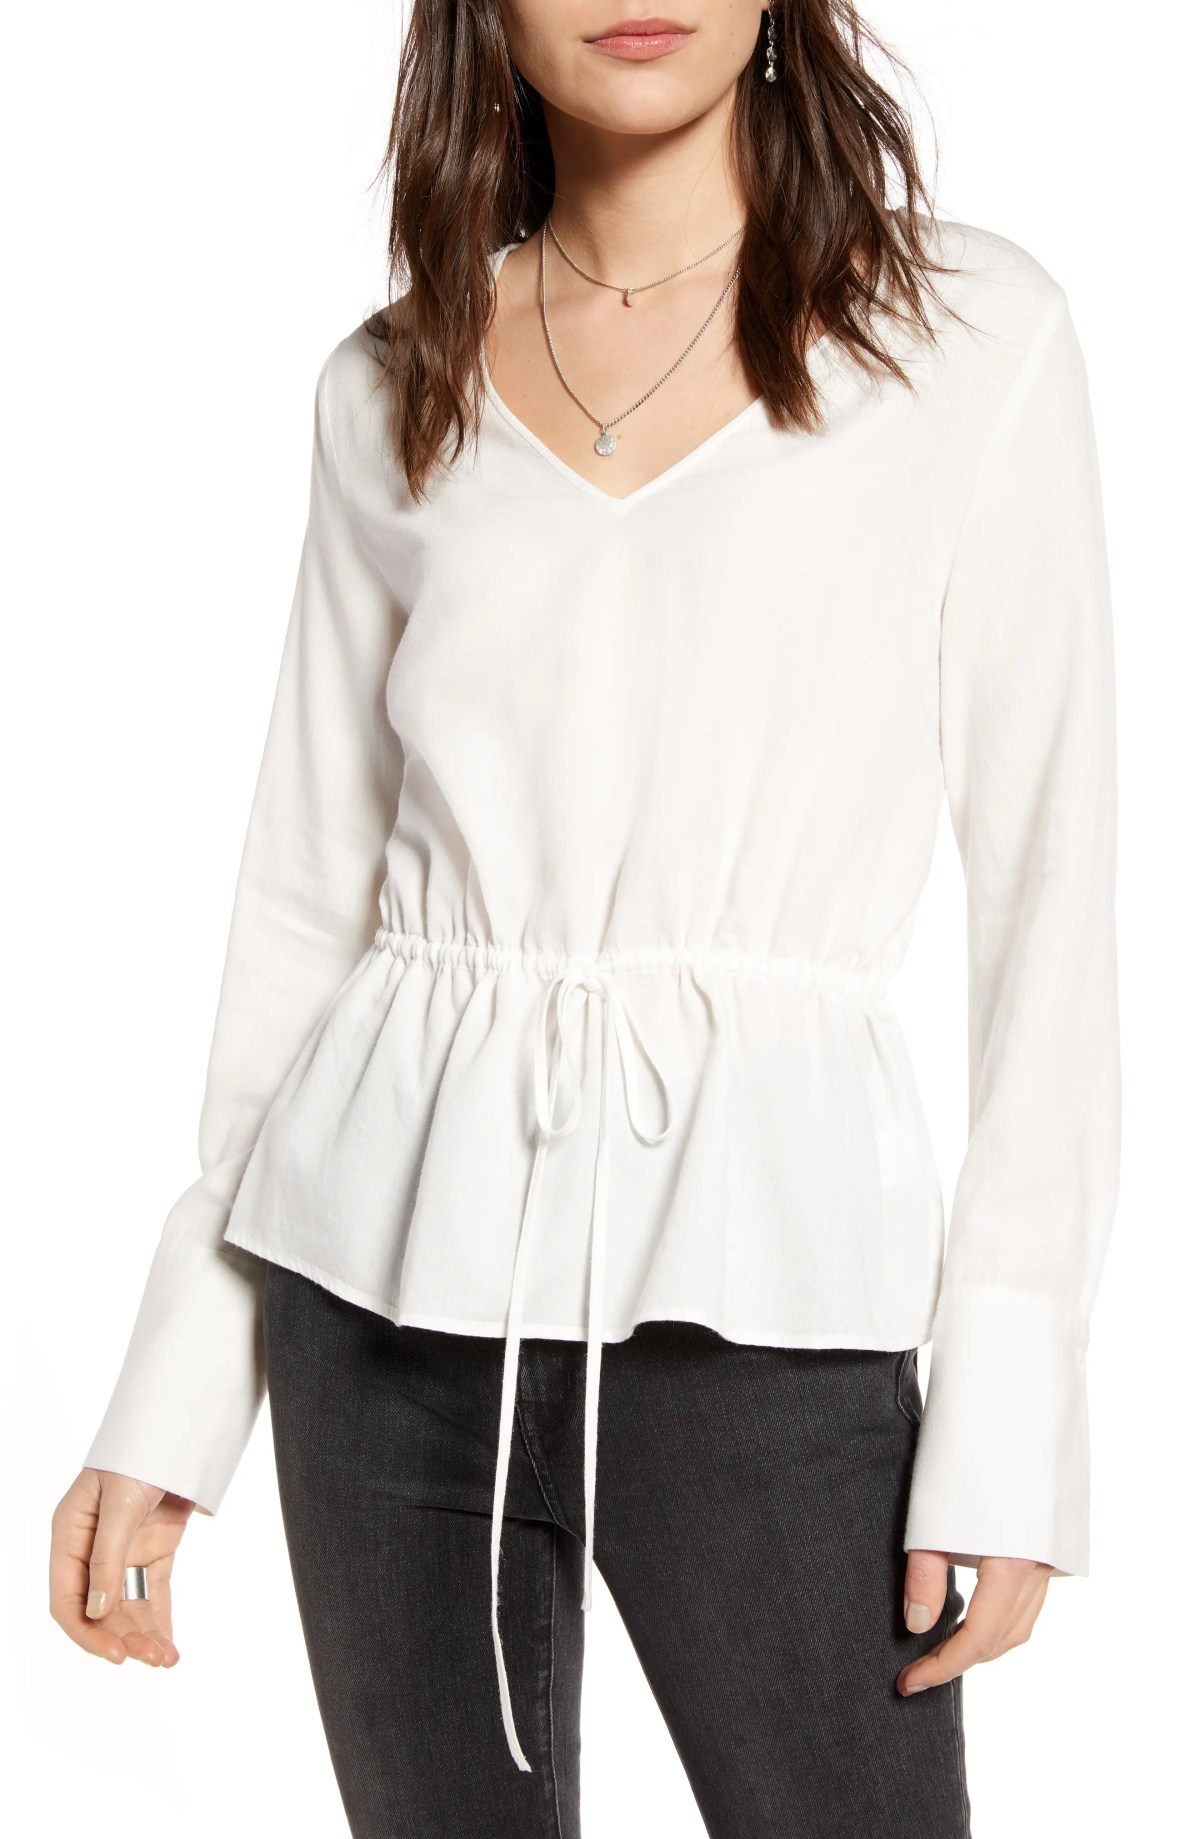 TREASURE & BOND Tie Waist Peplum Blouse, Main, color, IVORY